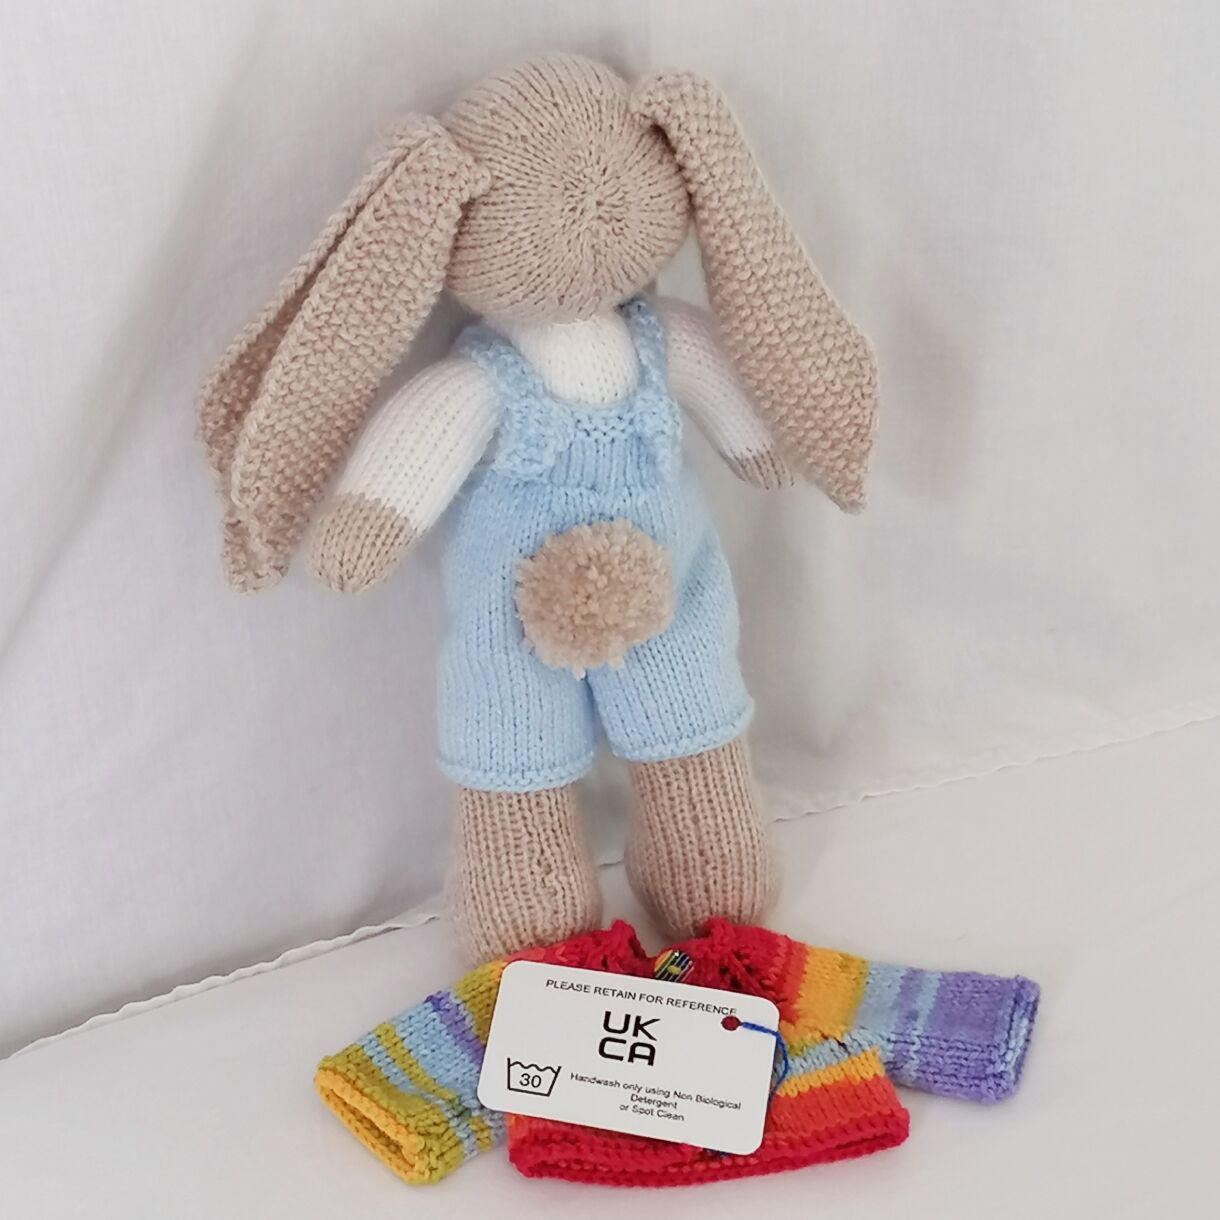 handknitted-rainbow-bunny-unique-gift-blue-back-no-jacket